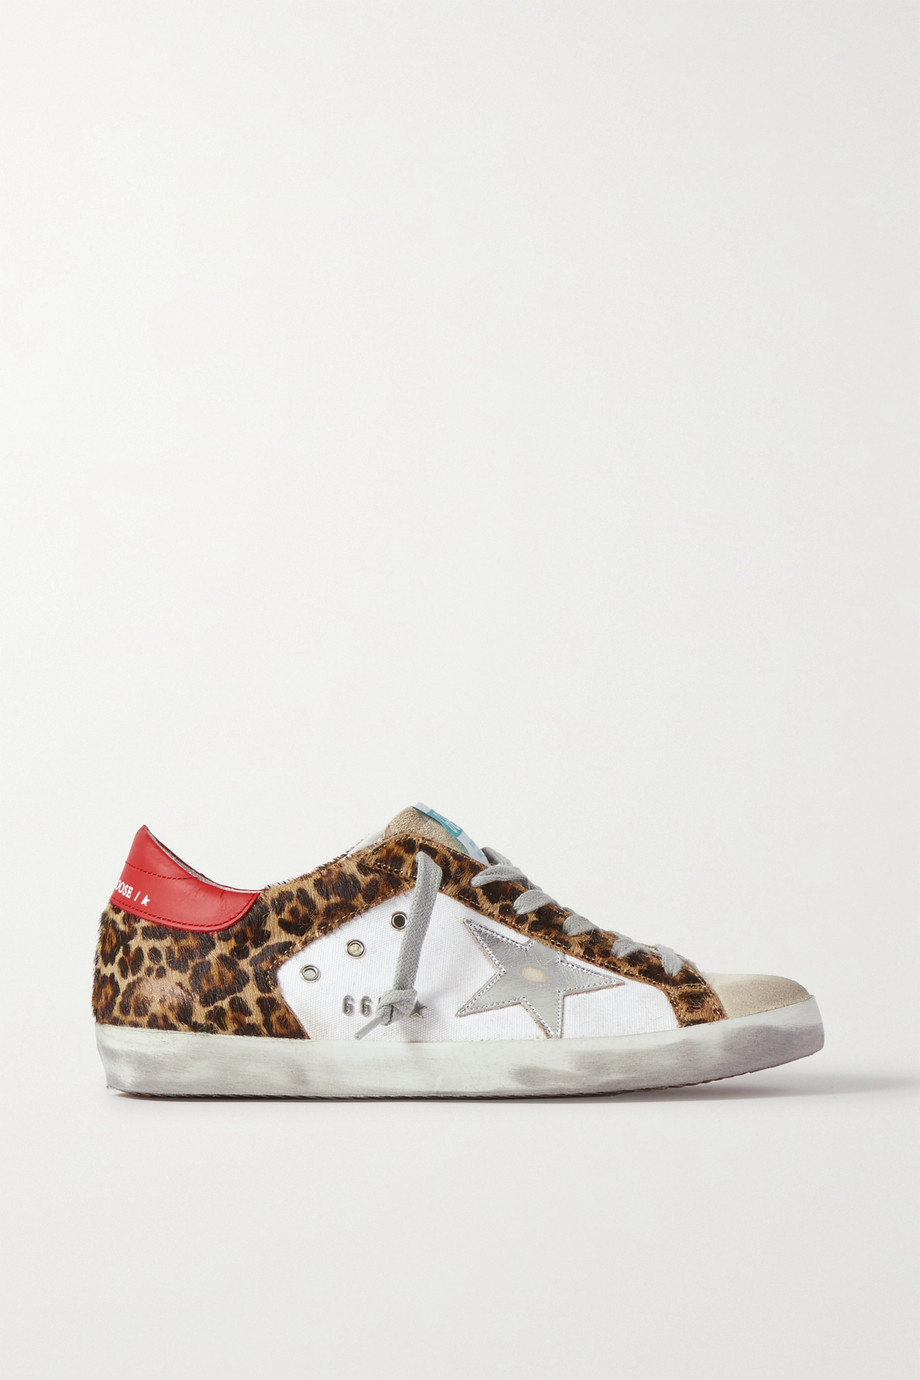 Golden Goose Superstar distressed leopard-print calf hair, leather and suede sneakers